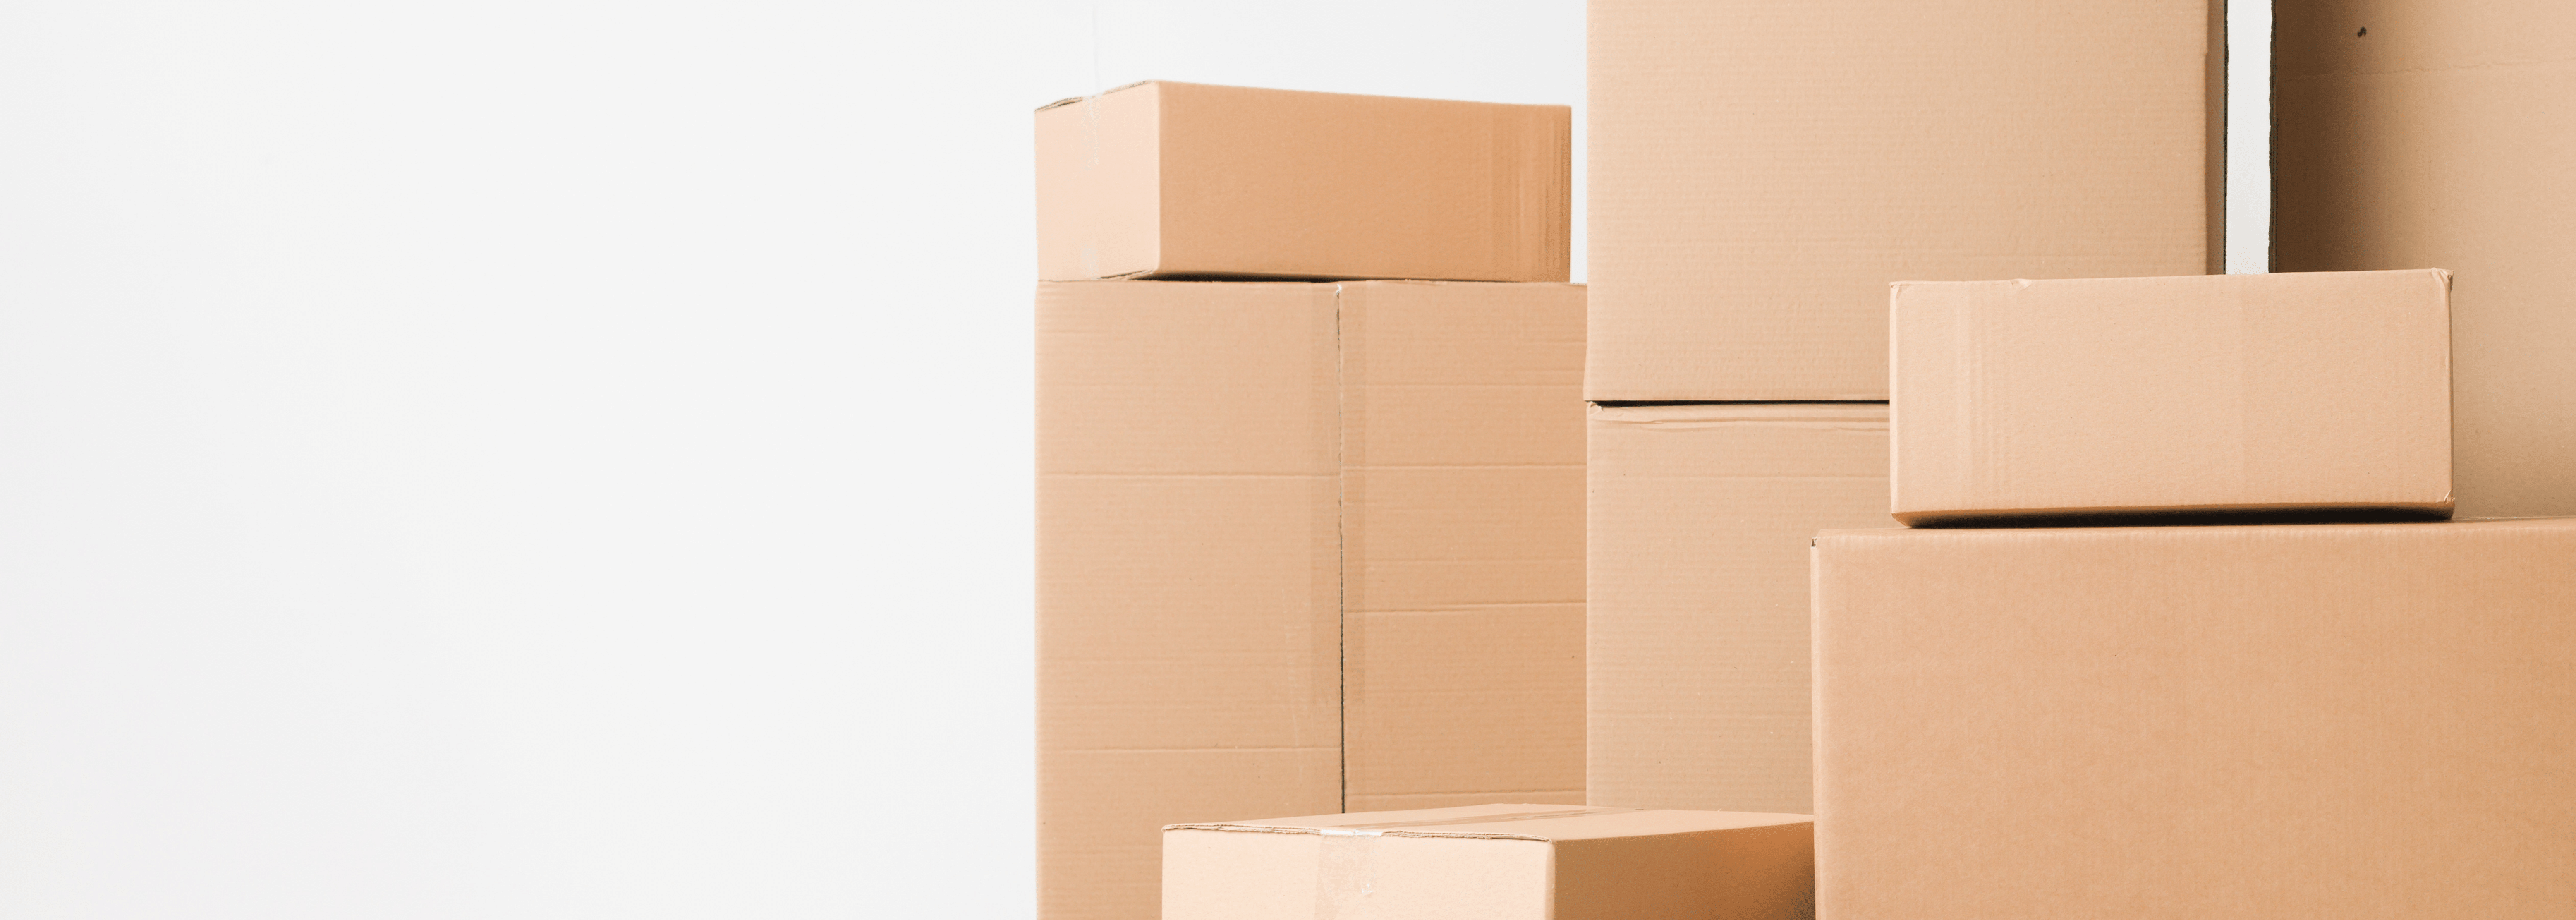 Managed vendor inventory boxes